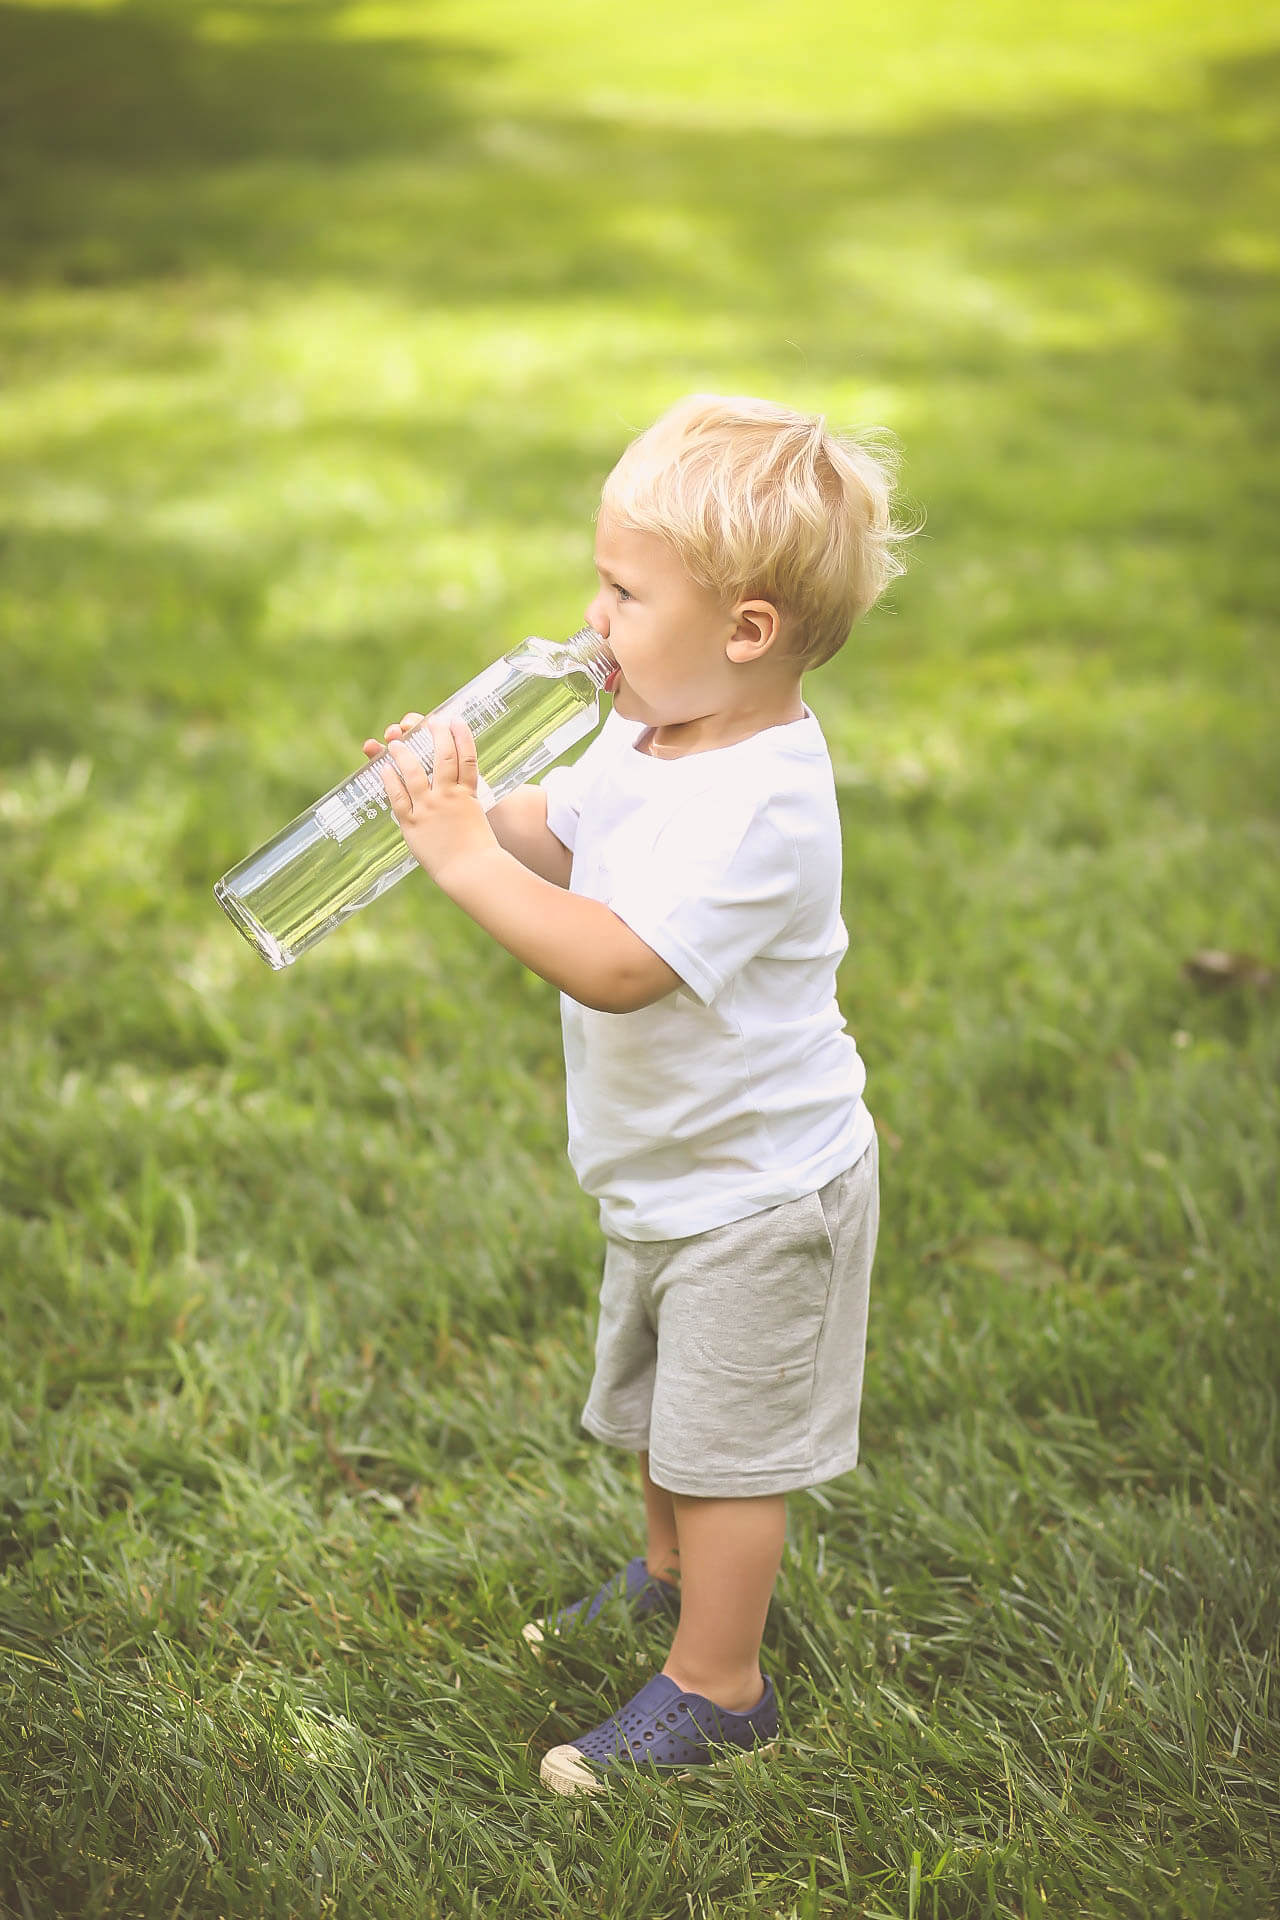 beyondfit kids, healthy kids challenge hydration